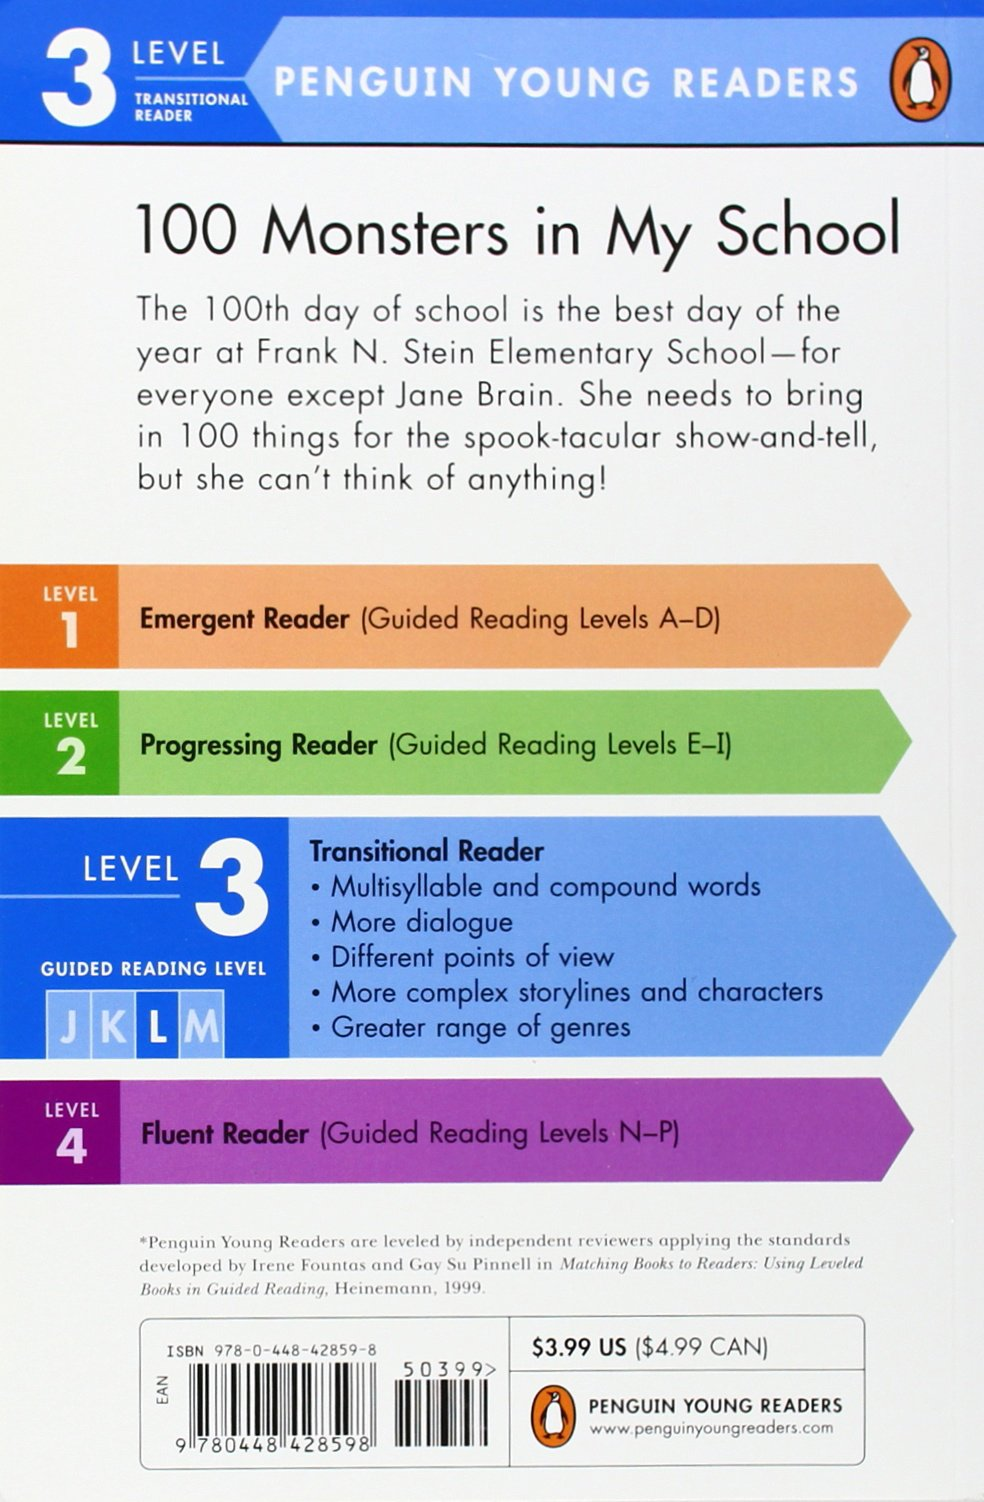 Amazon.com: 100 Monsters in My School (Penguin Young Readers, Level 3)  (9780448428598): Bonnie Bader, Bryan Hendrix: Books